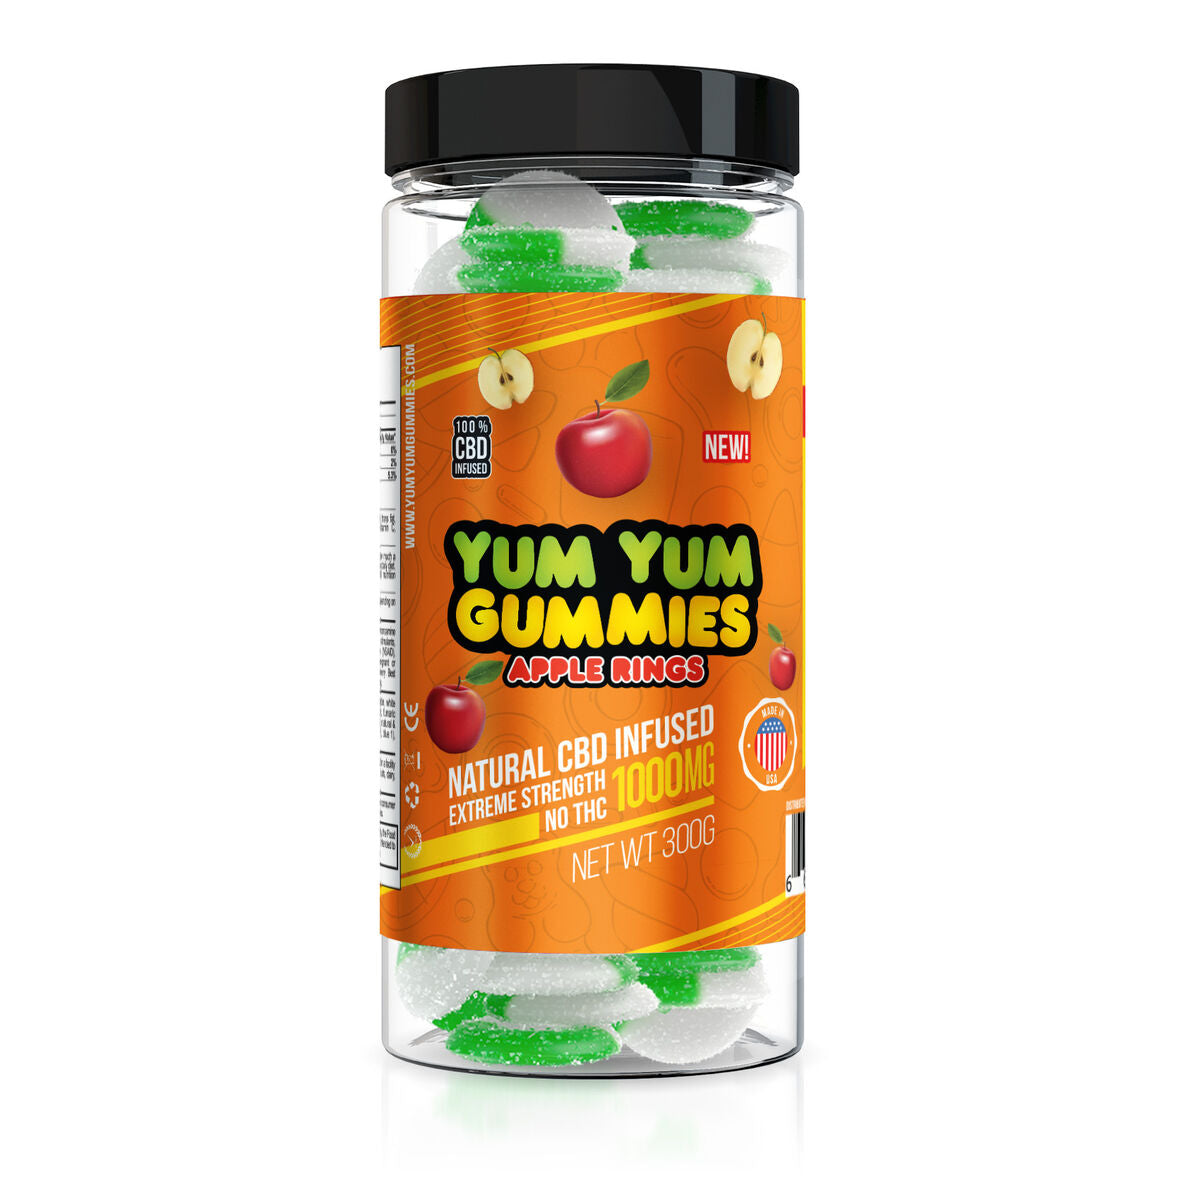 Yum Yum Gummies 1000mg - CBD Infused Apple Rings